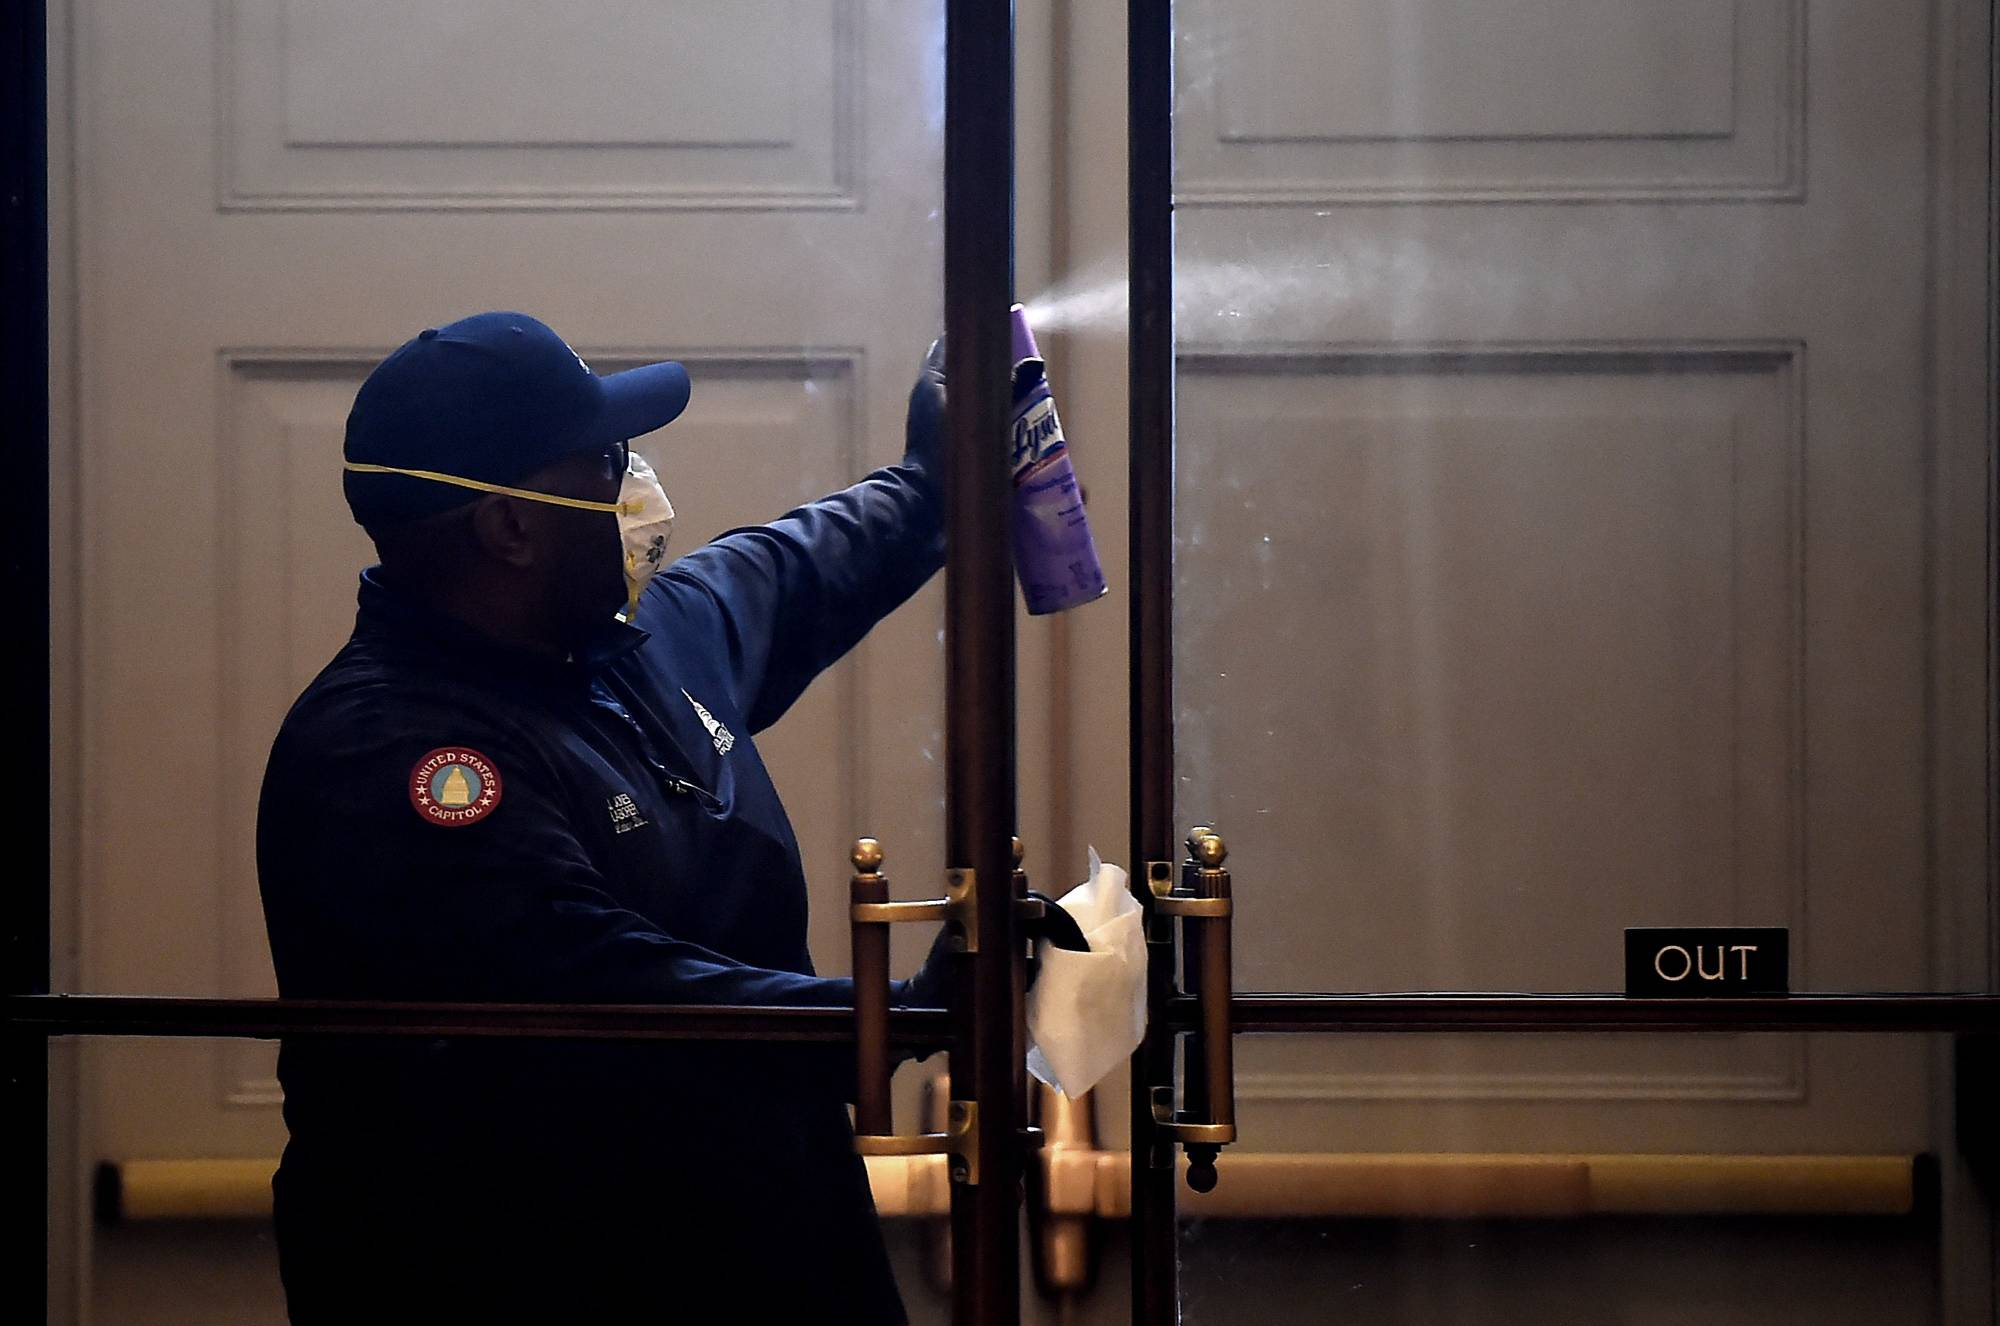 A worker, wearing protective gloves and a mask, disinfects a door inside of the U.S. Capitol in Washington on Friday amid the coronavirus pandemic. | AFP-JIJI